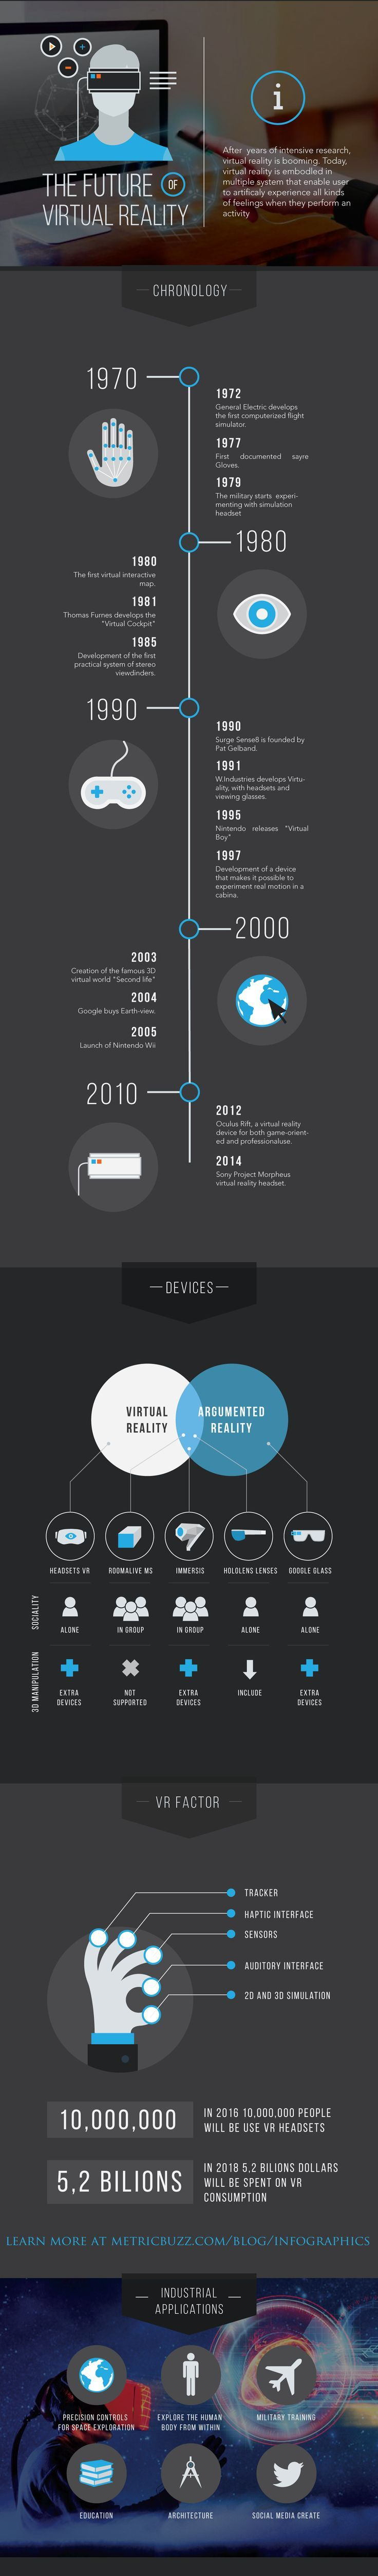 a history of the creation of virtual reality History of virtual reality, part 3 morton heilig announced to the world his intention on spreading the idea of virtual reality with the sensorama.